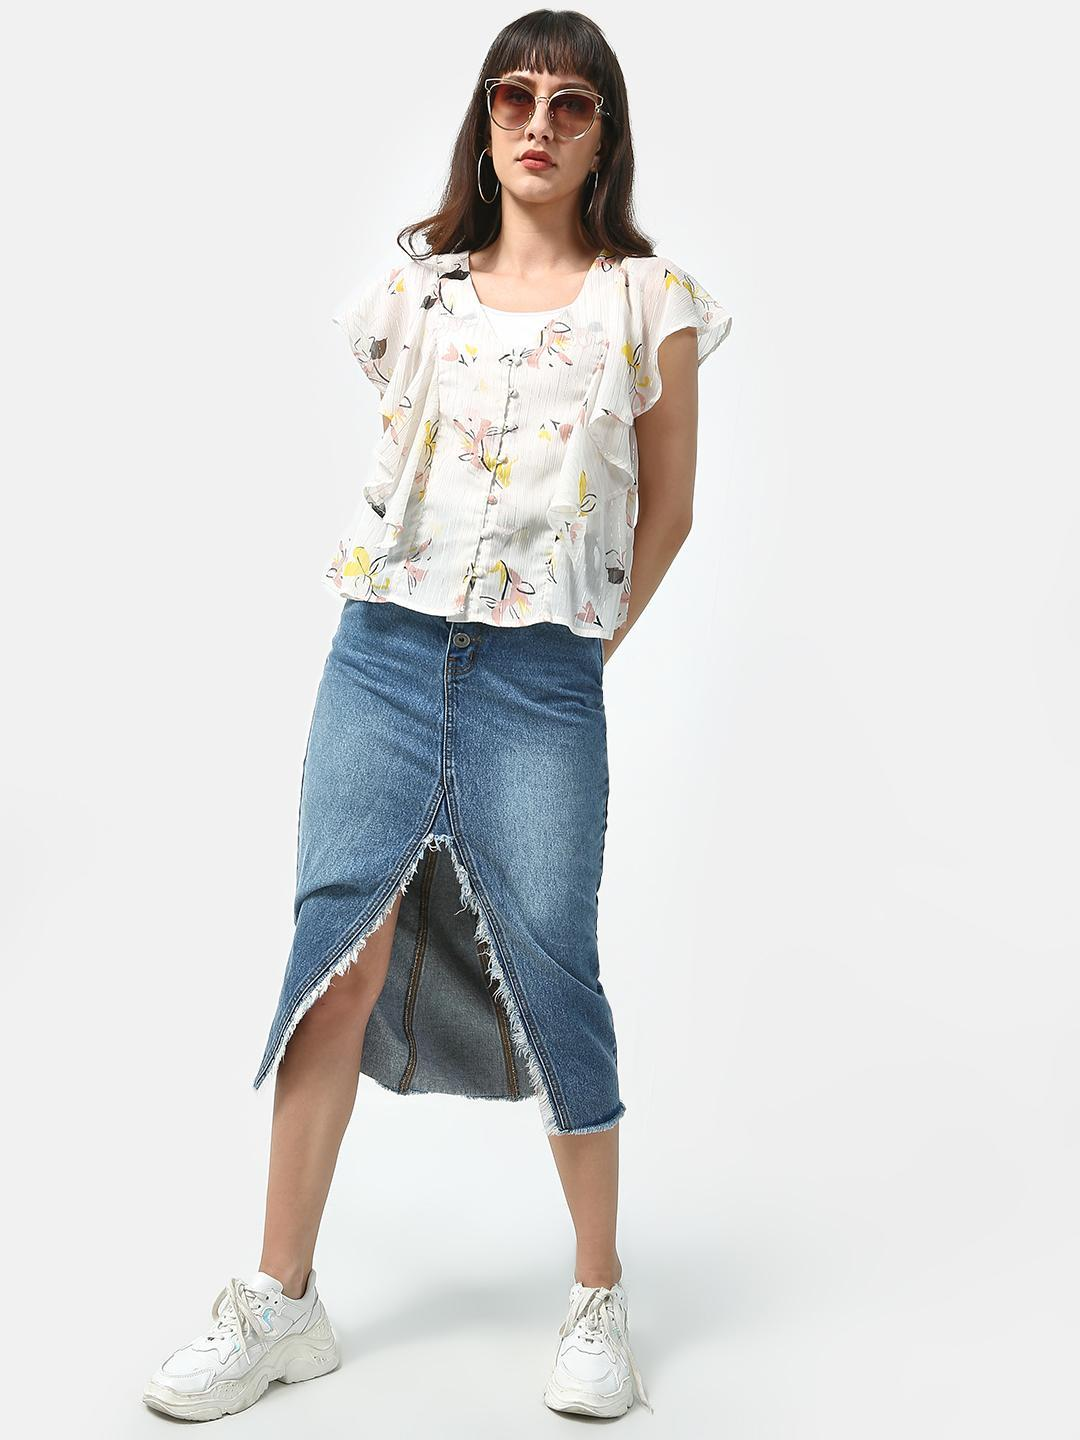 Oxolloxo Beige Basic Floral Printed Top 1